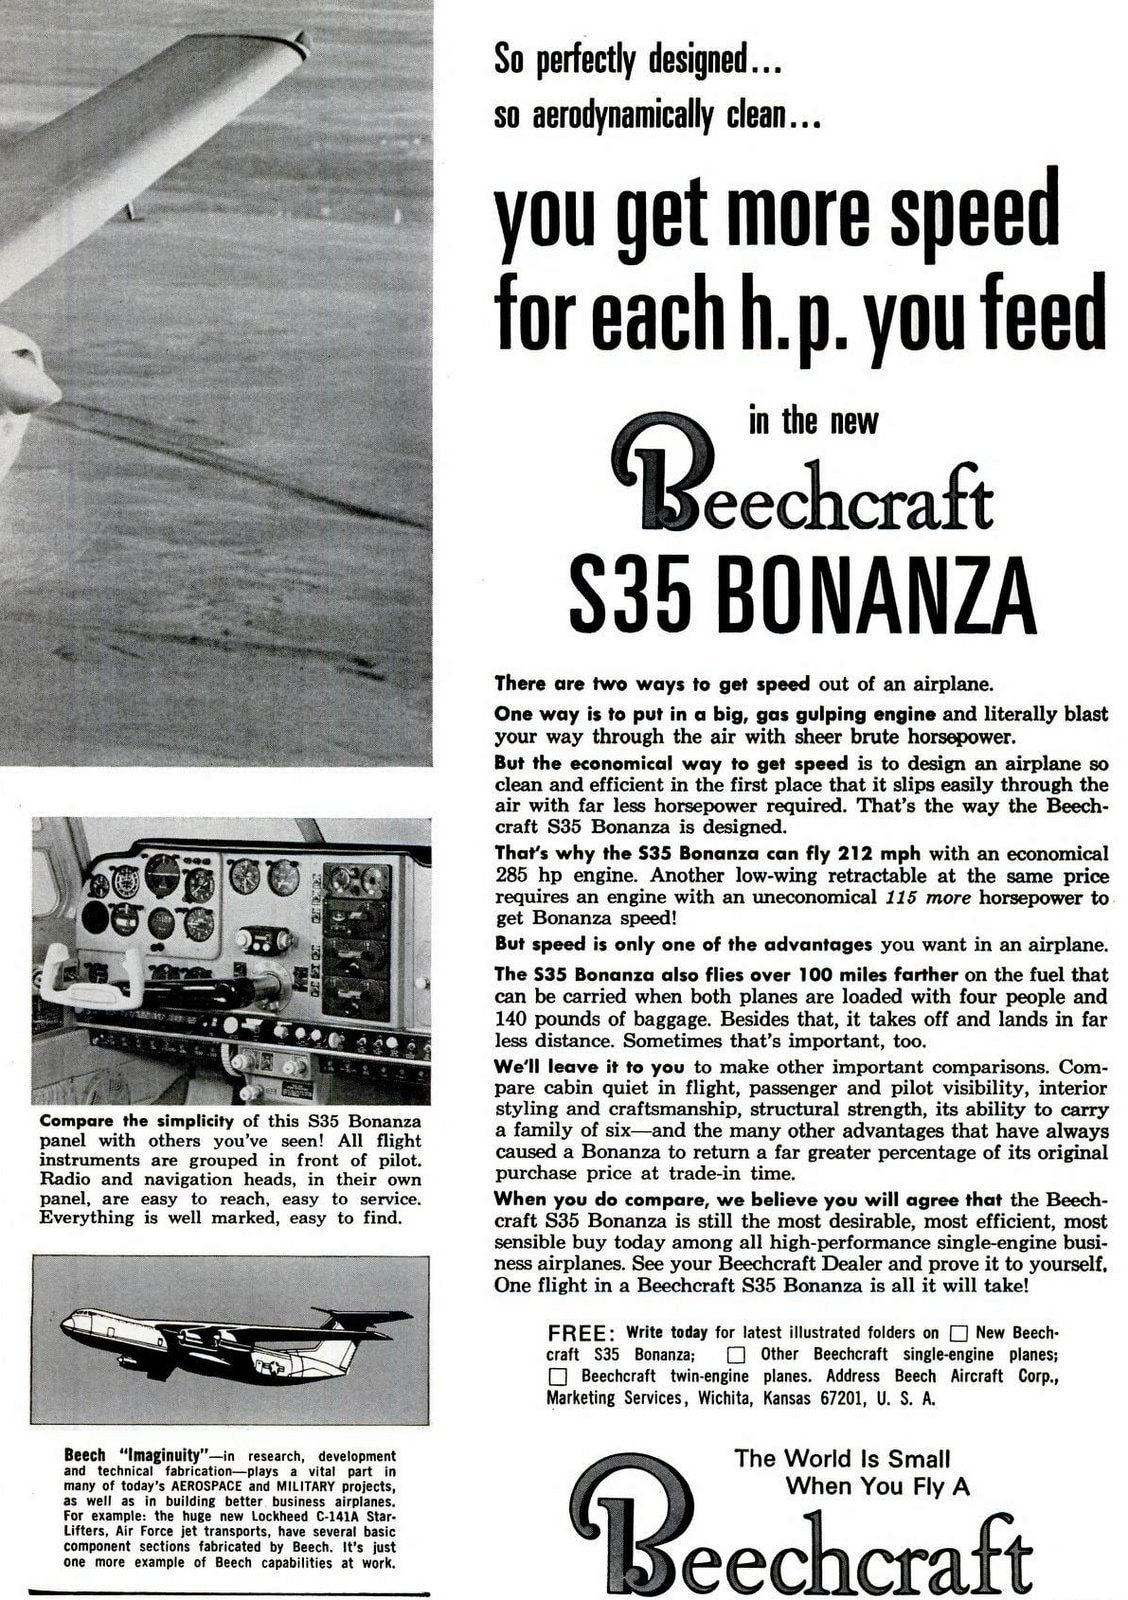 Vintage Beechcraft S-35 aircraft from 1965